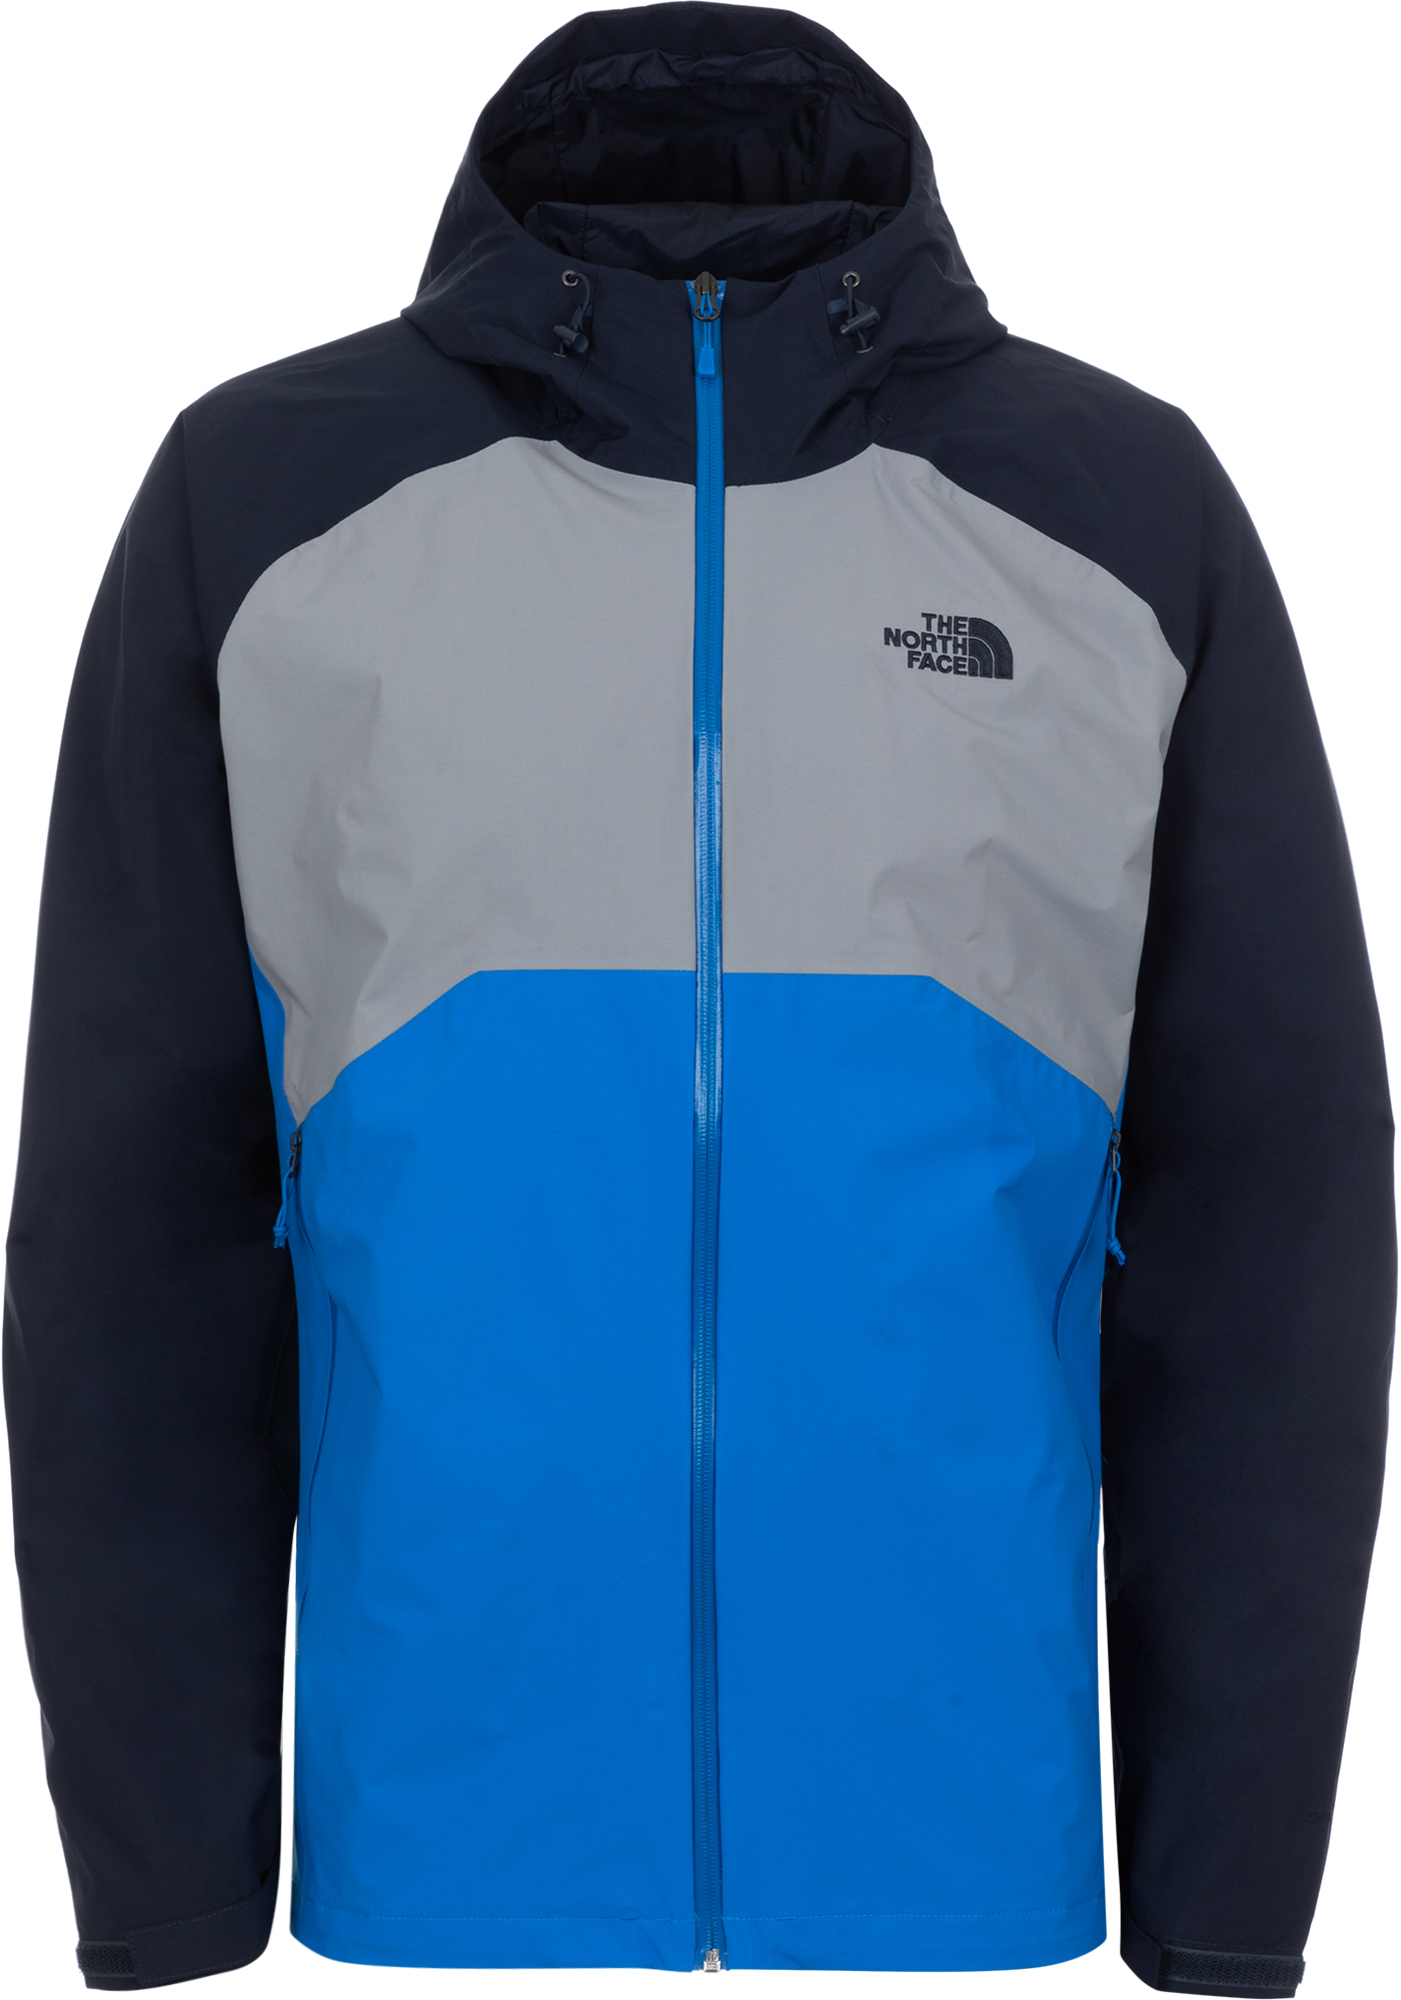 The North Face Ветровка мужская The North Face Stratos, размер 52